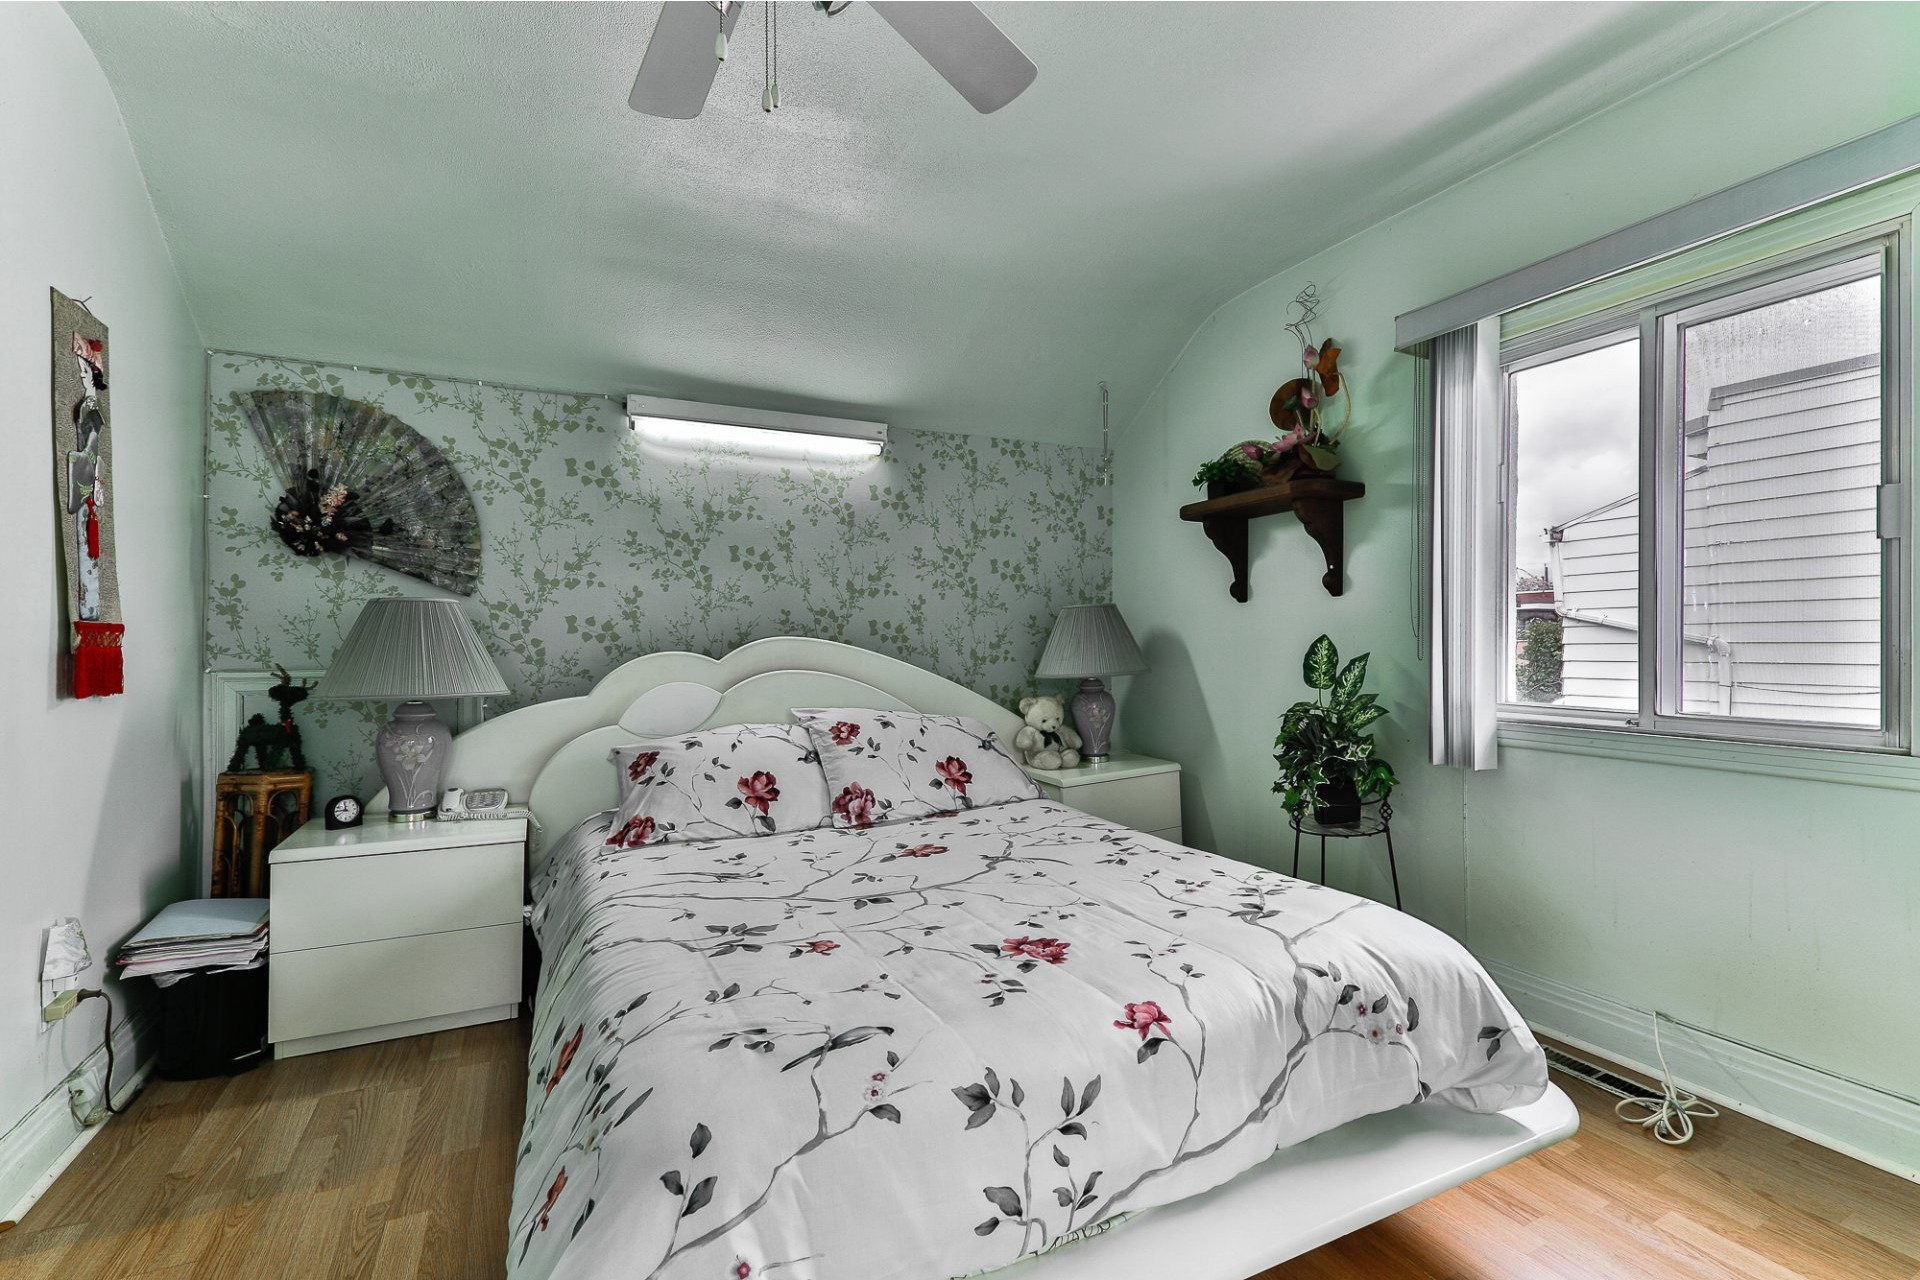 image 12 - House For sale Ahuntsic-Cartierville Montréal  - 8 rooms